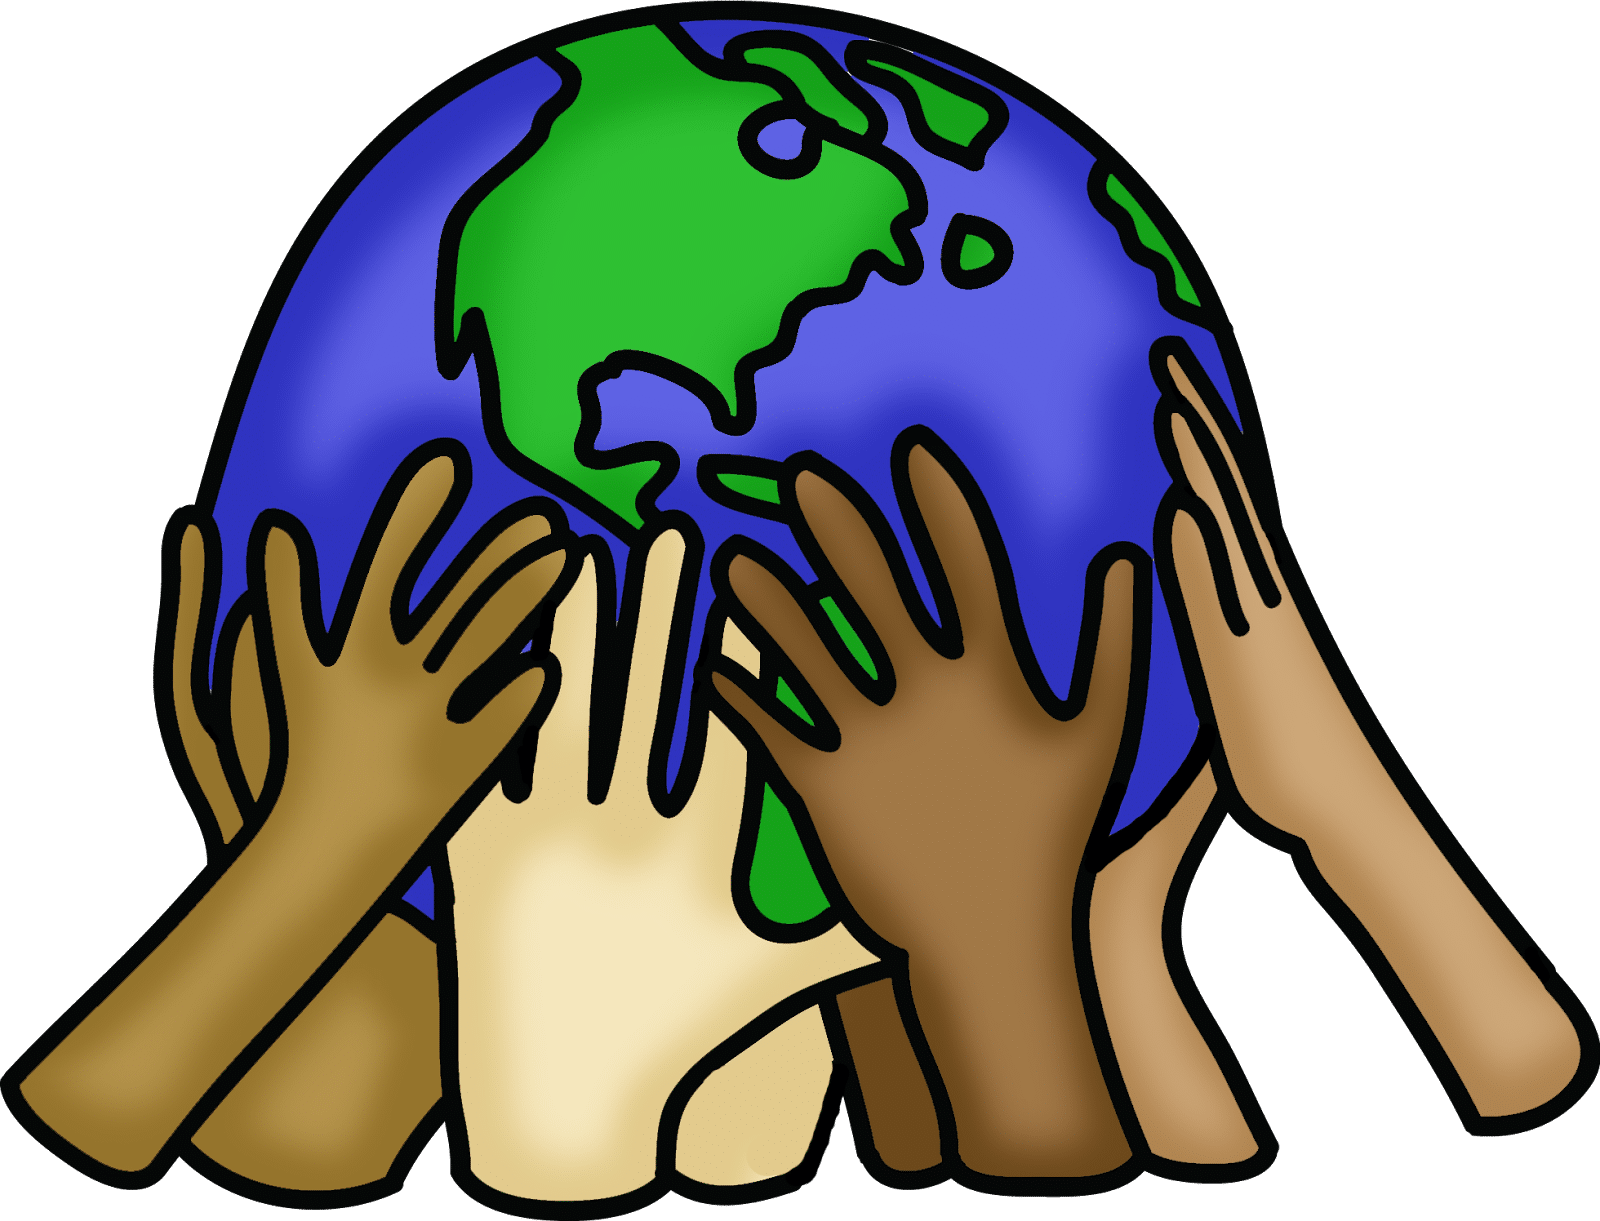 earth day clipart with hands free hd images rh oppidanlibrary com earth day 2017 clipart happy earth day clipart